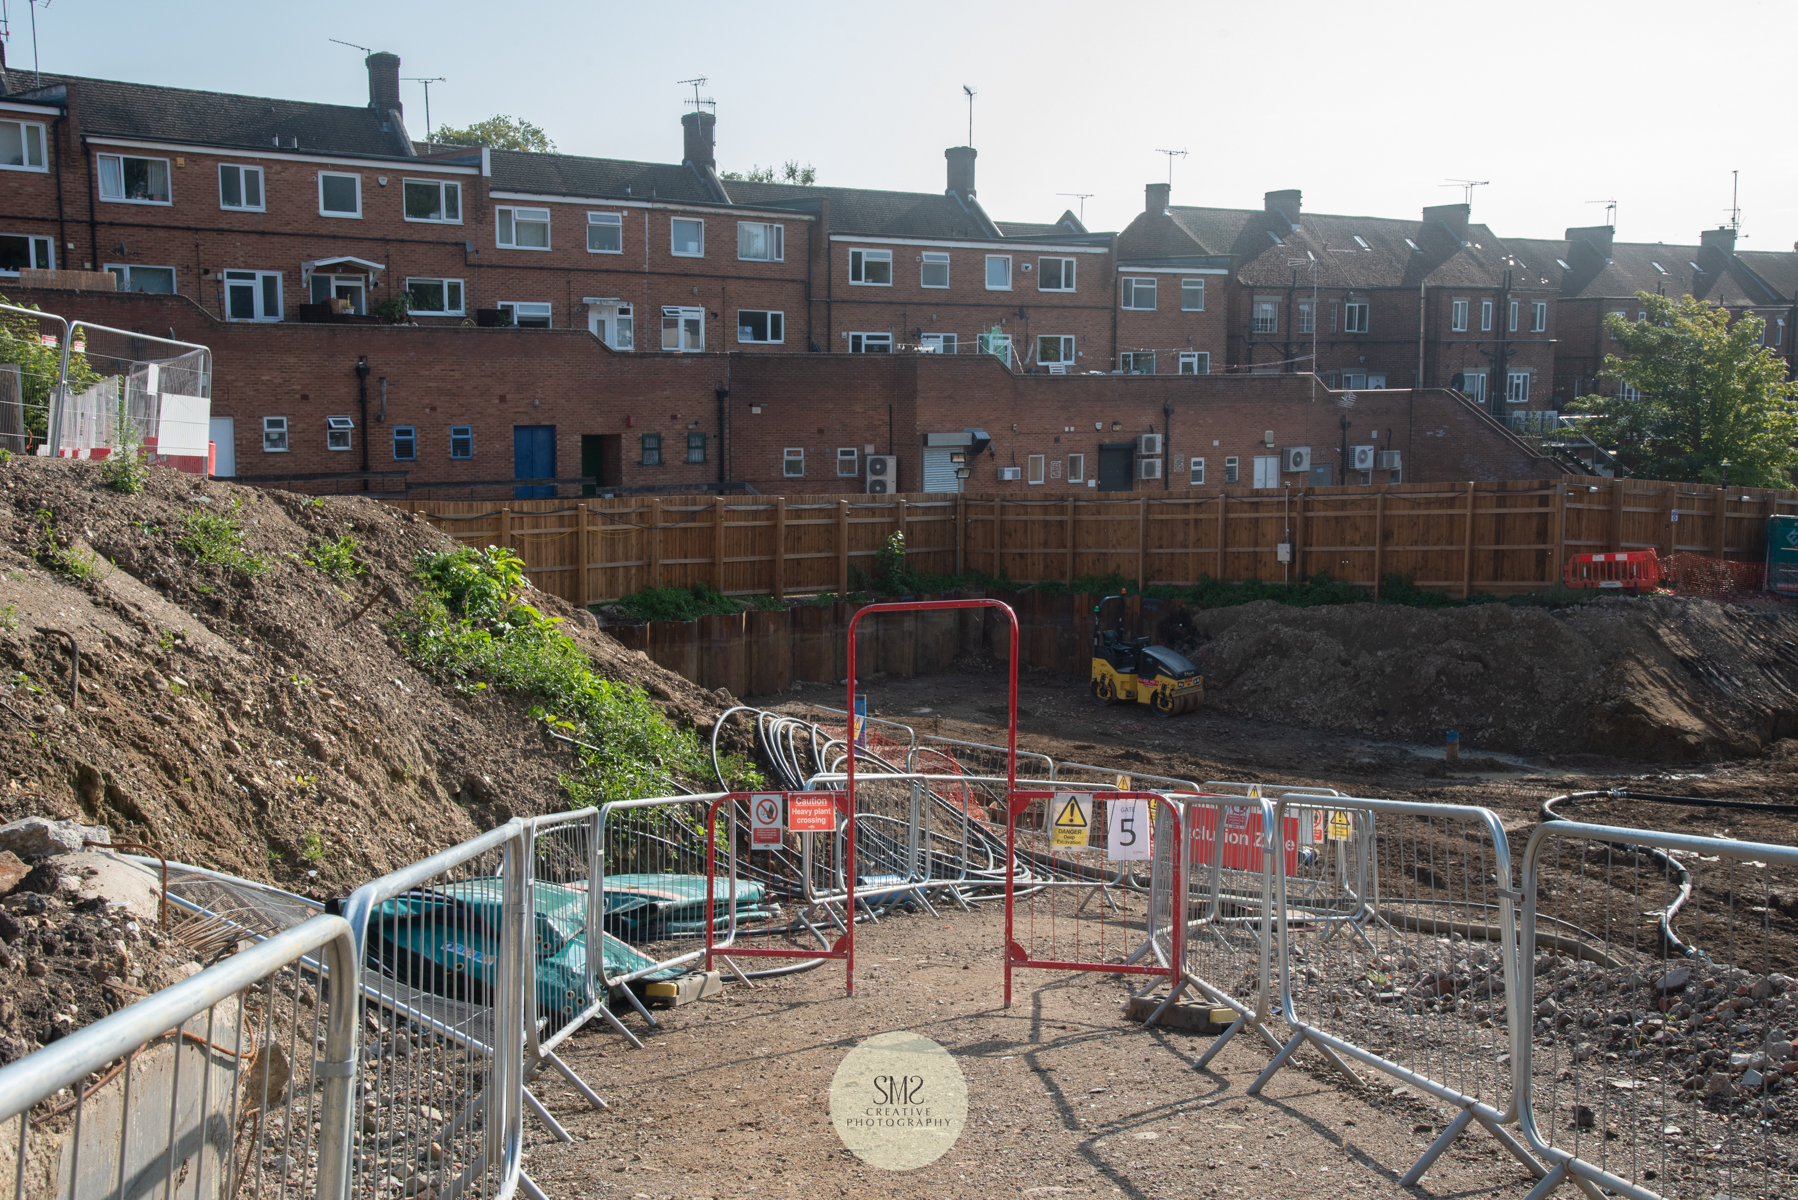 Safety walkways for site managers, engineers and others to access the site within carefully contained boundaries.